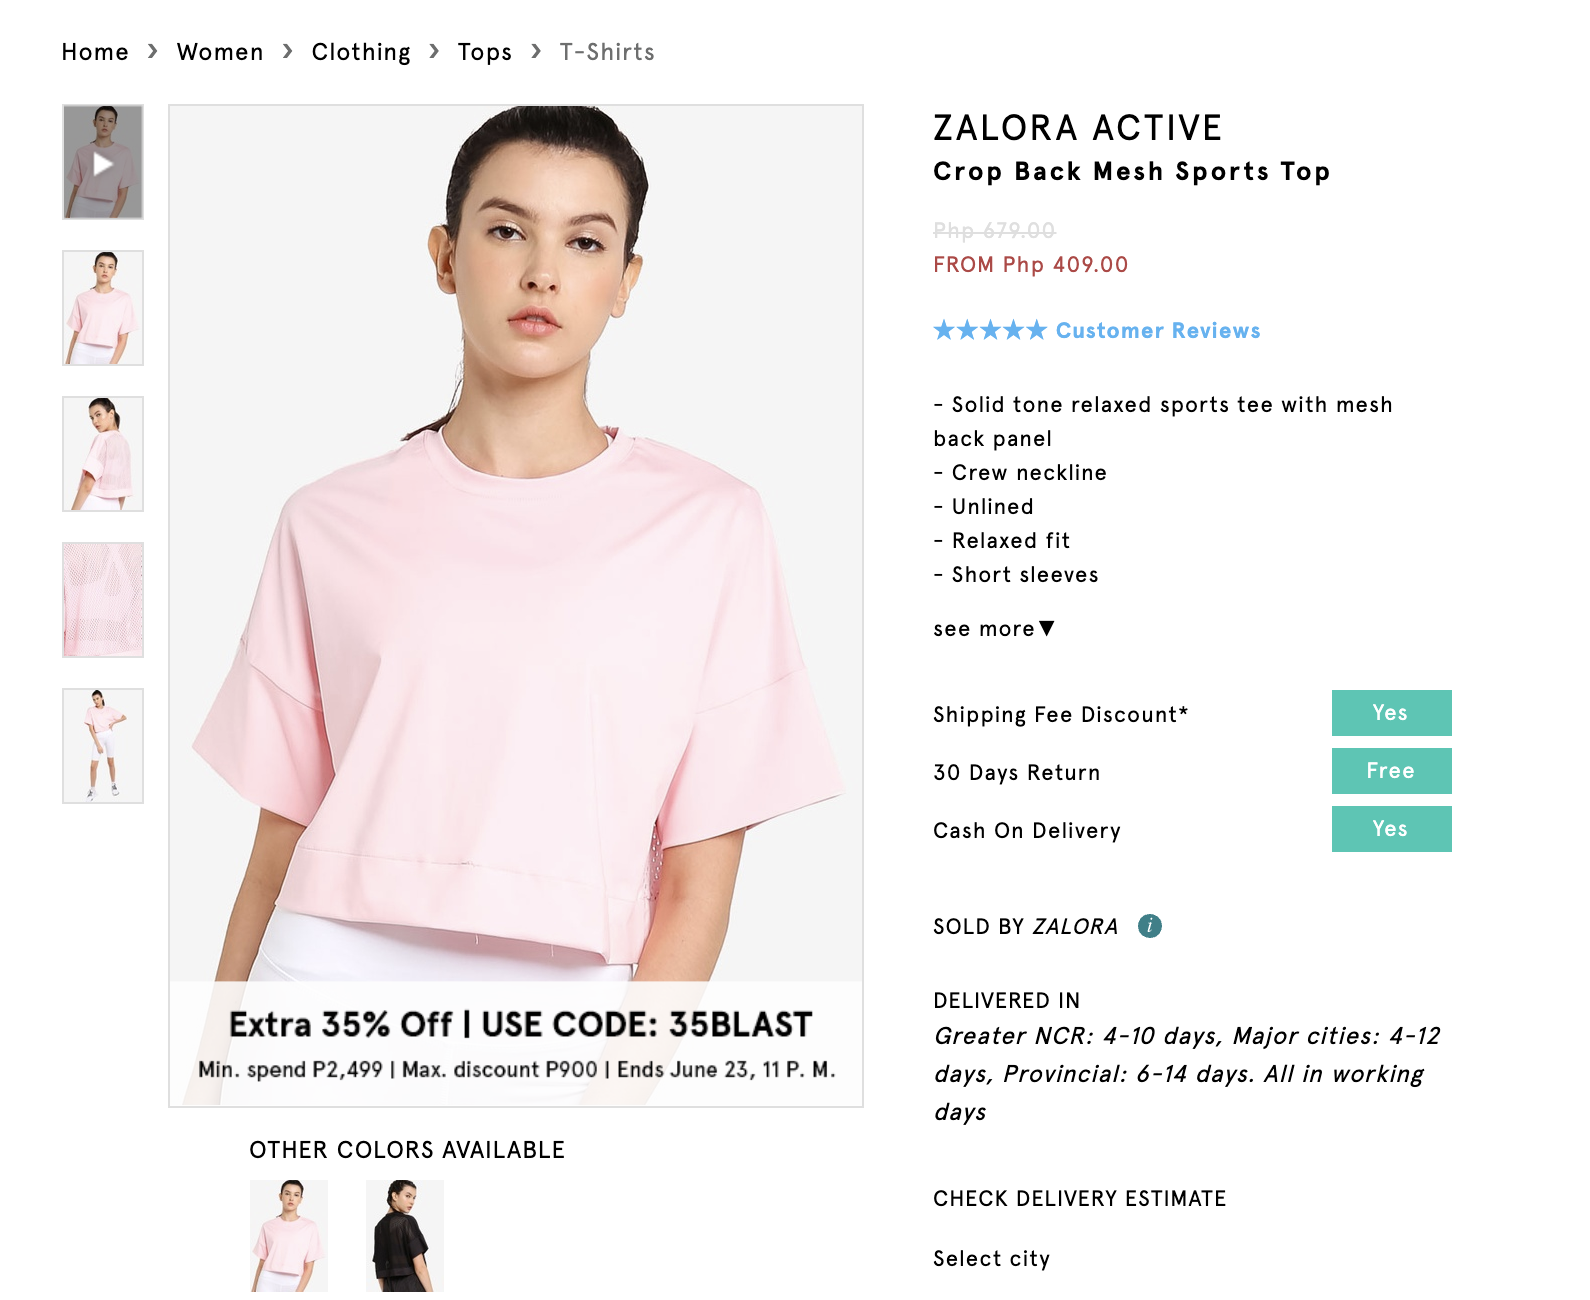 Screenshot of Zalora Active Crop Back Mesh Sports Top